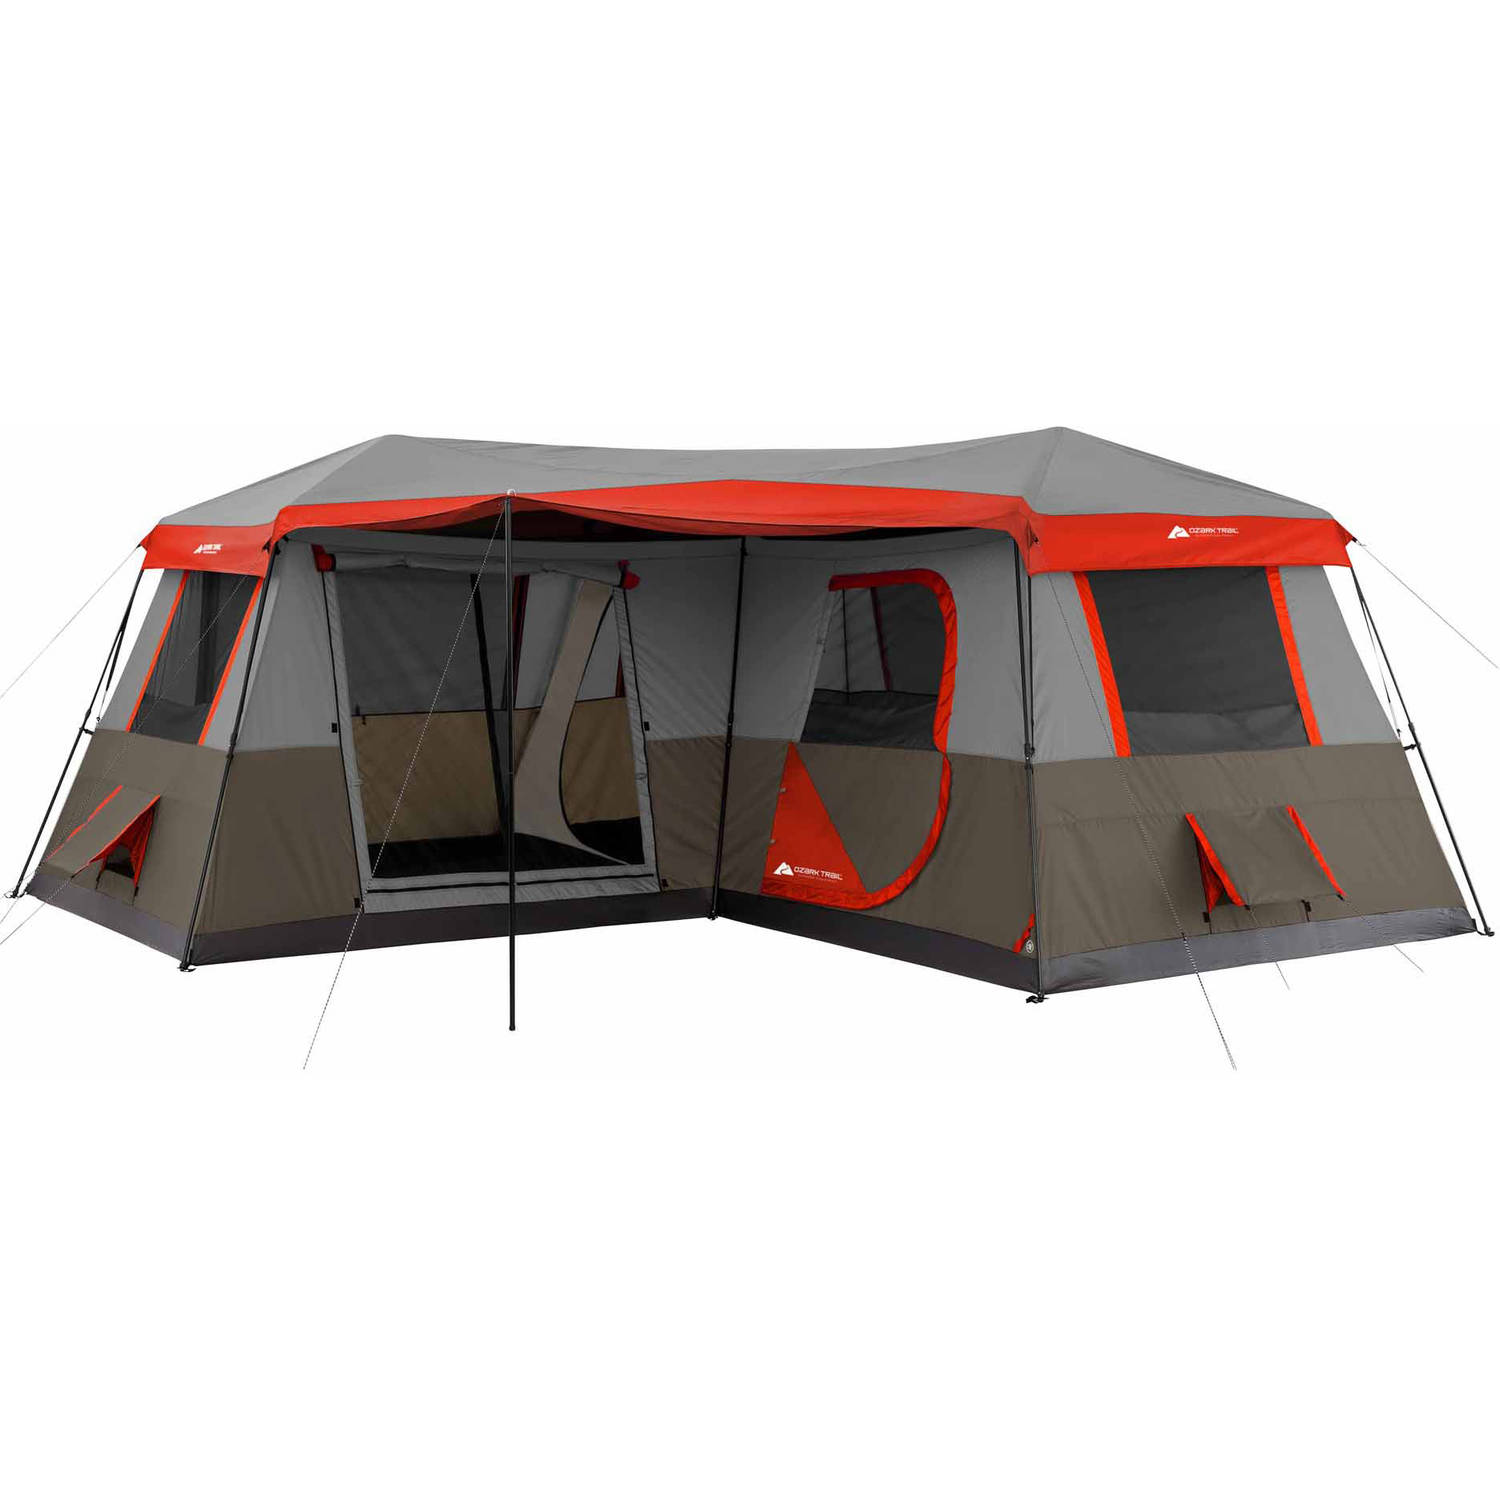 sc 1 st  Walmart & Shade Tent for Beach